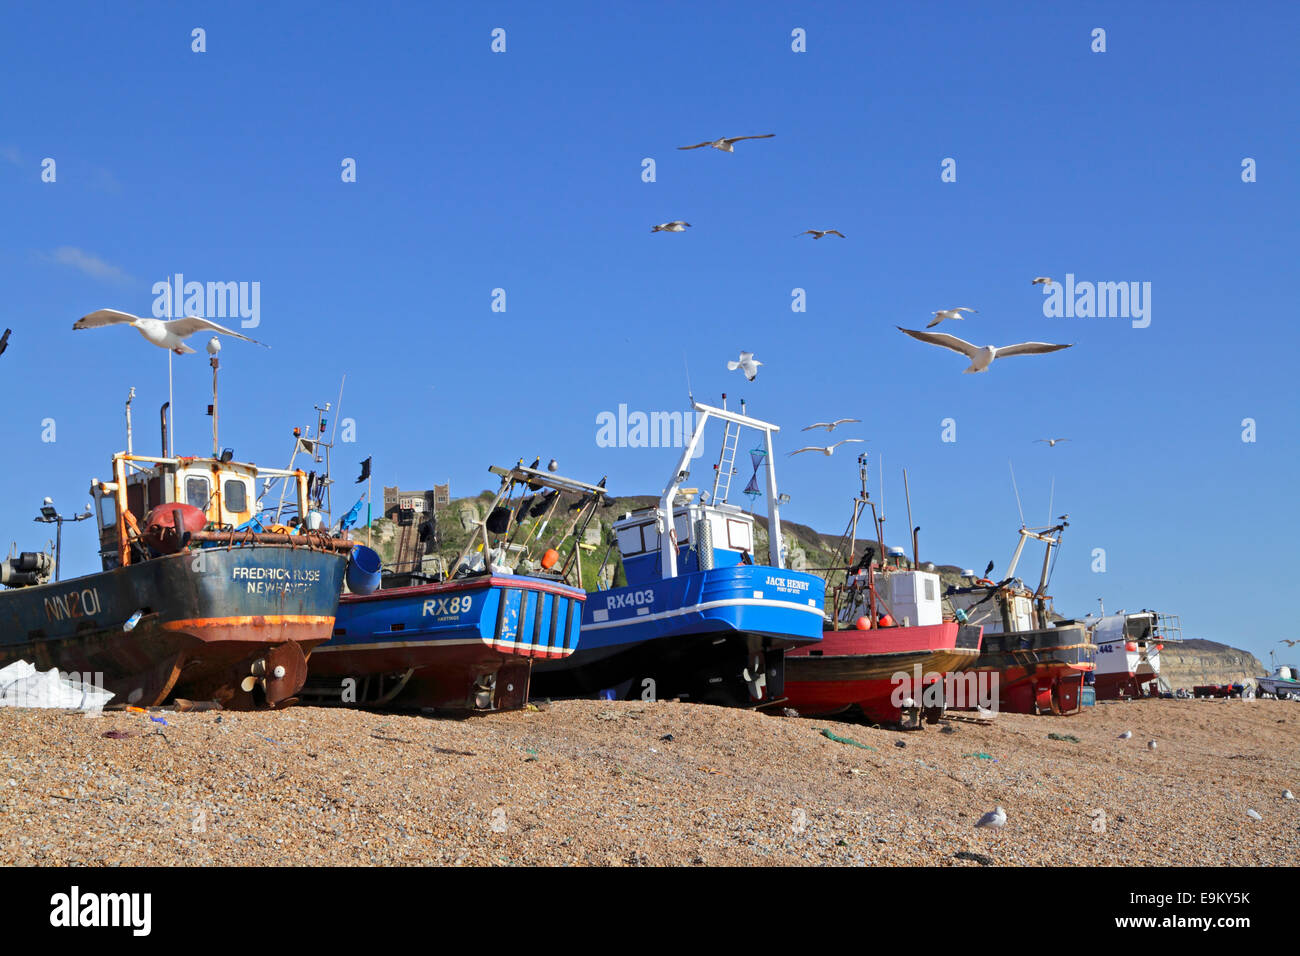 Hastings UK trawlers on the Old Town Stade beach. Hastings has the biggest beach launched fishing fleet in Britain - Stock Image